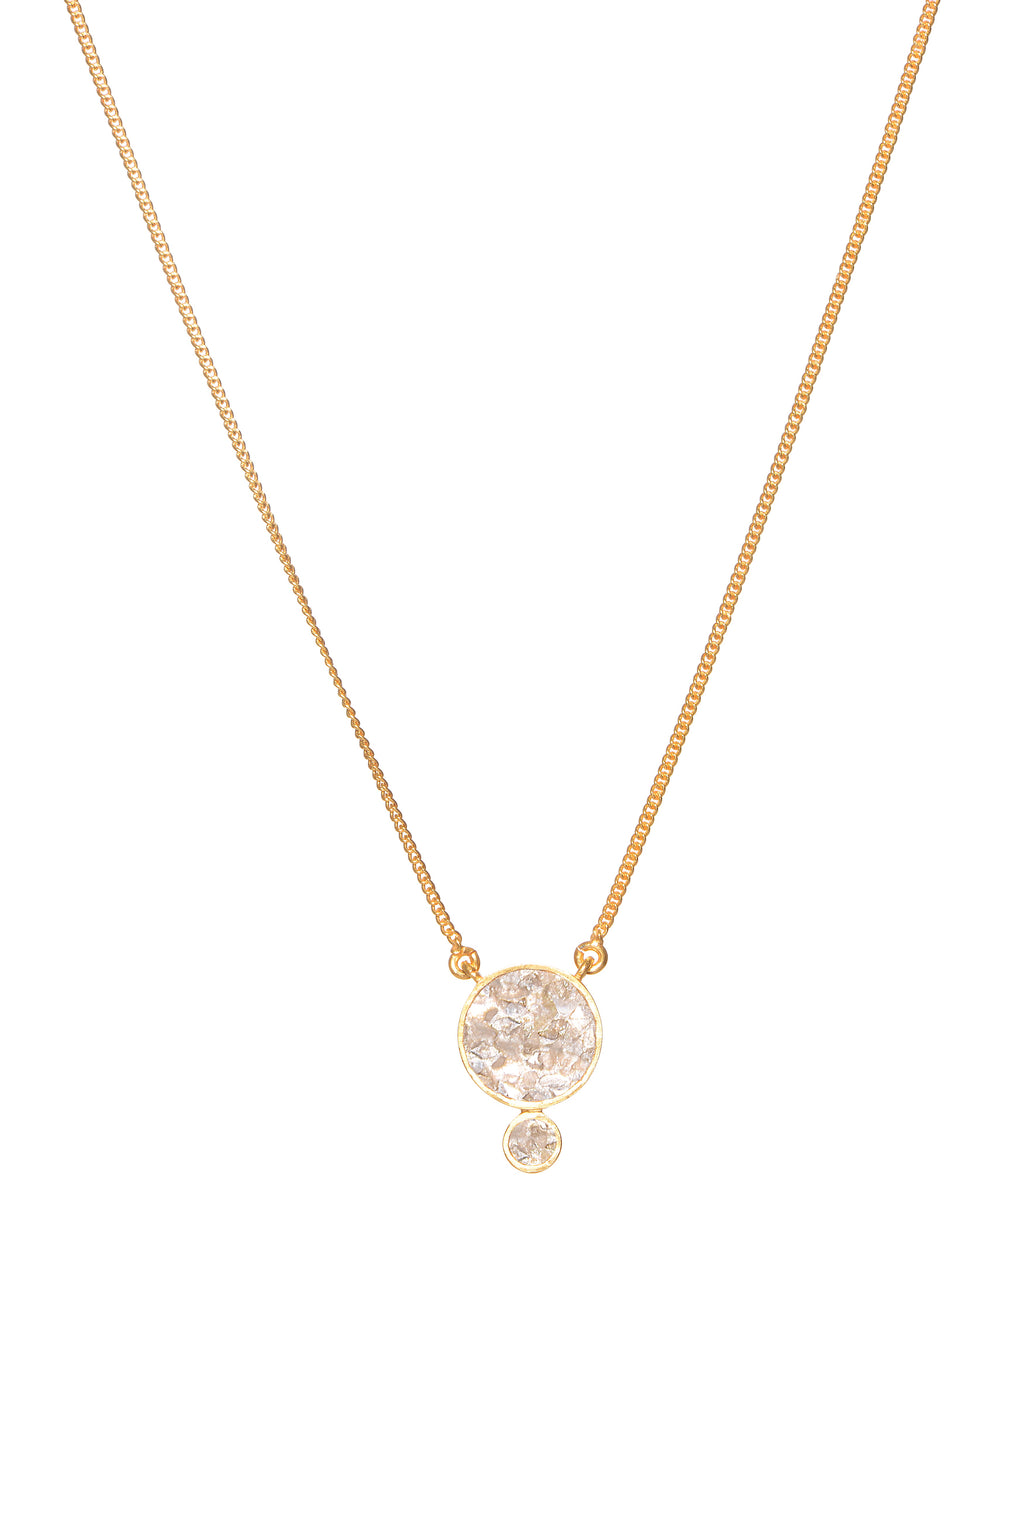 round diamond pendant on gold chain necklace